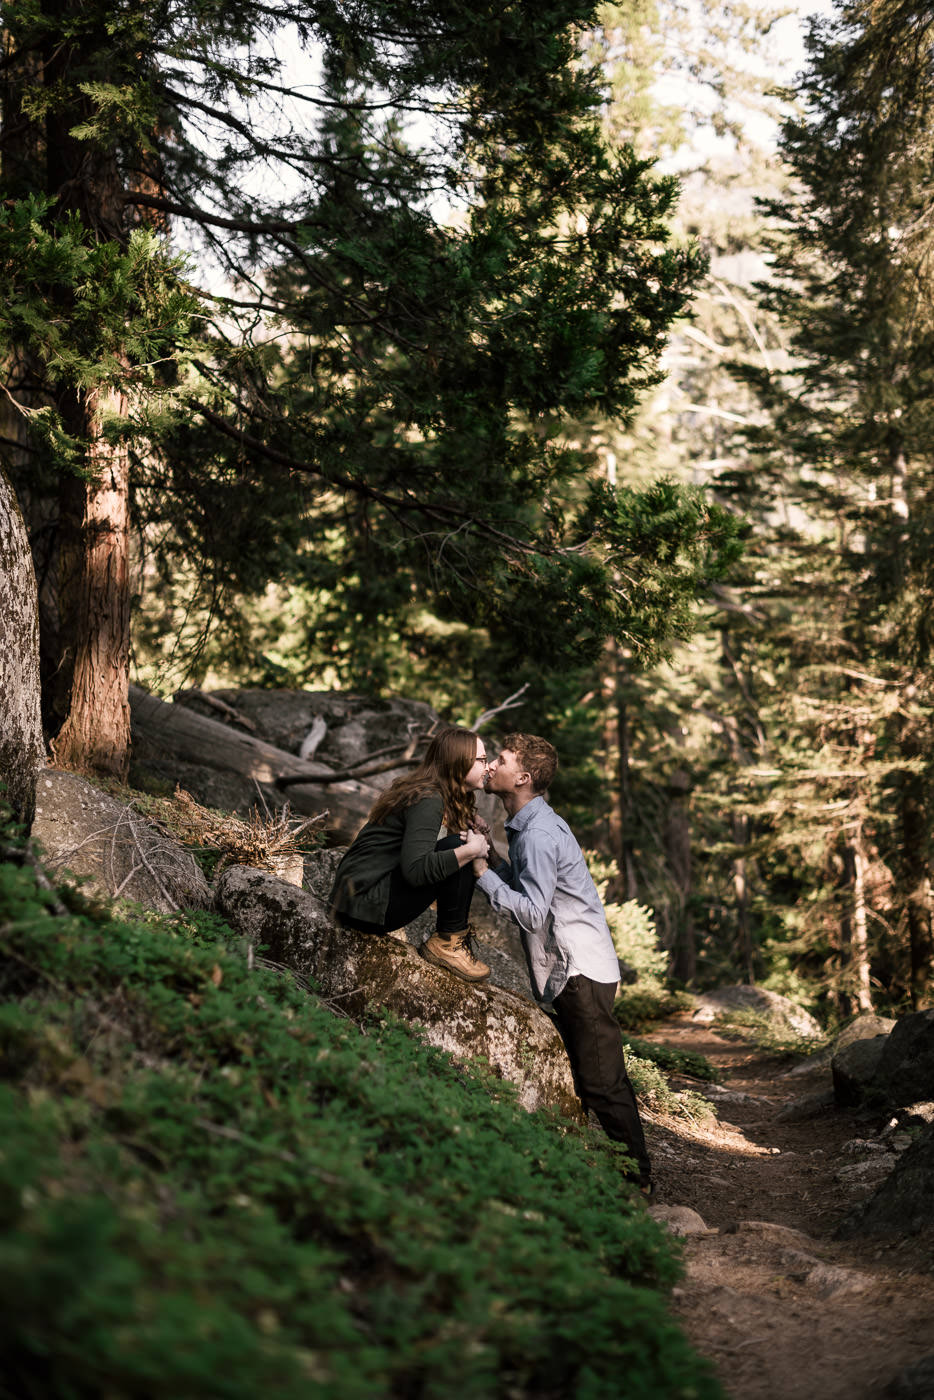 Couple kisses along the hiking trail at sunset in Sequoia National Park California for a romantic engagement